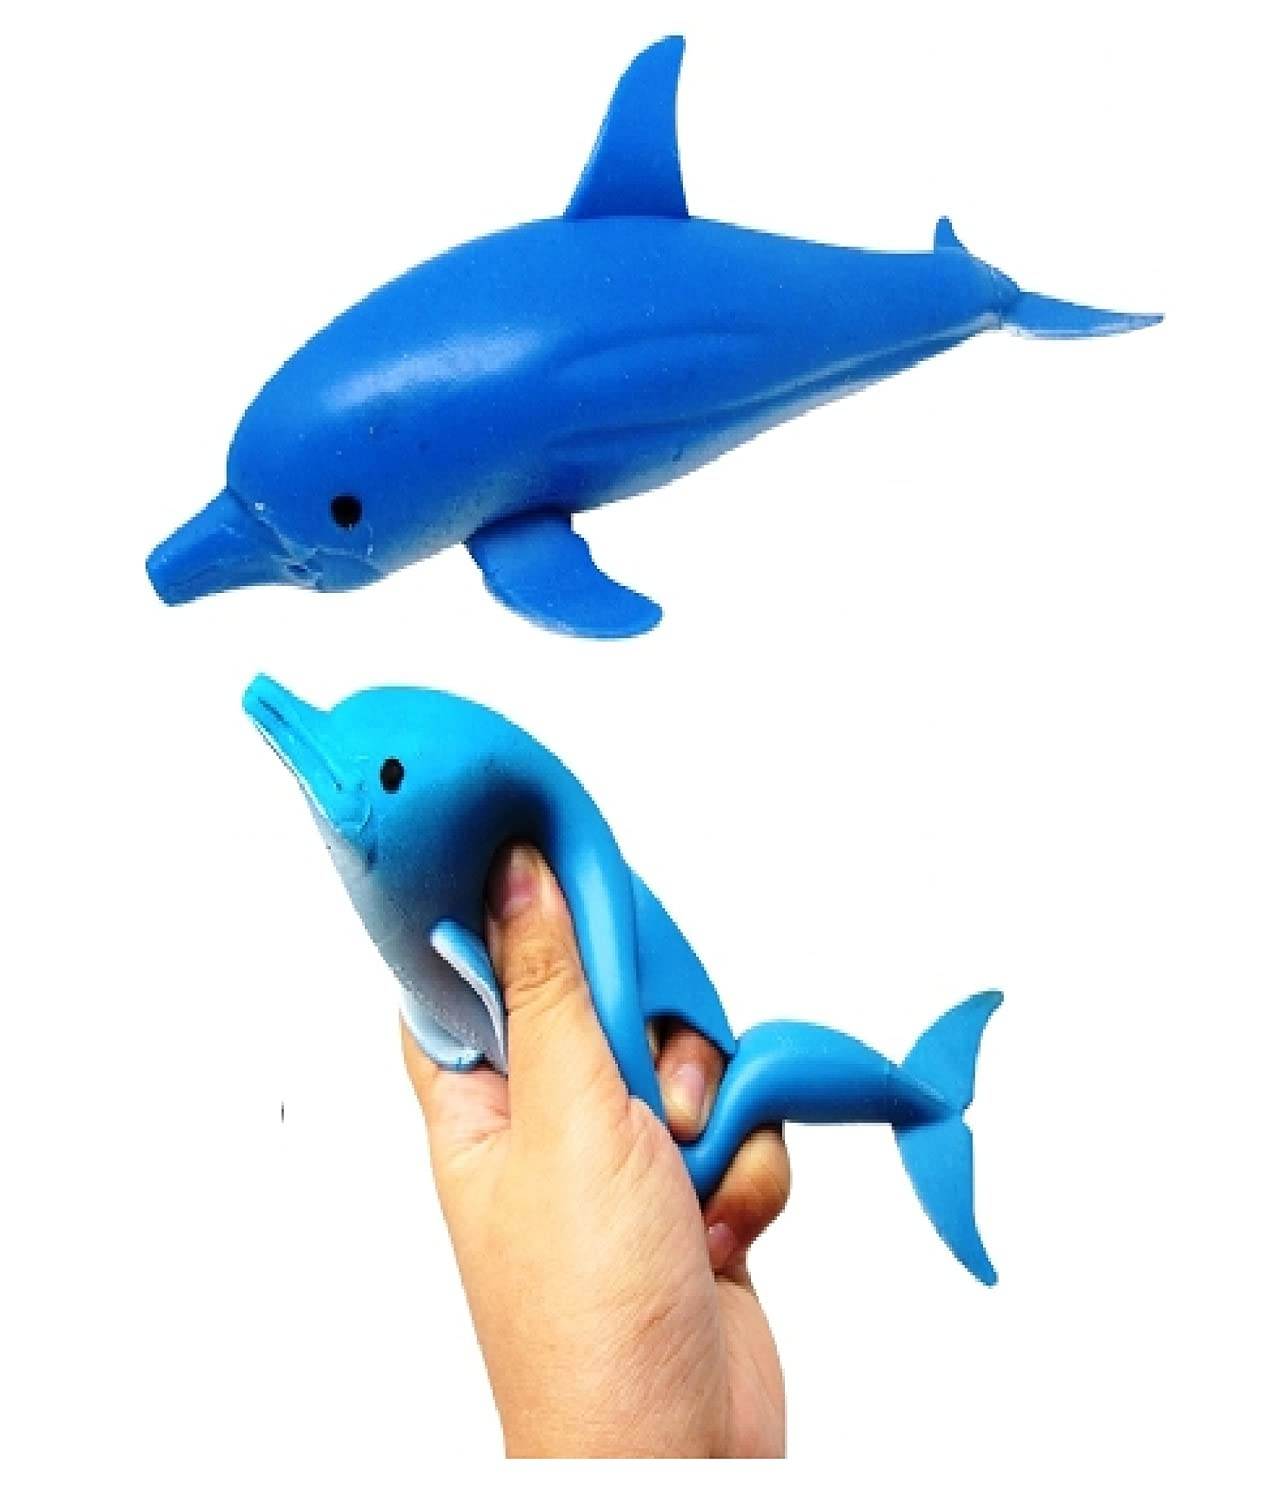 stretchy rubber dolphin 21 cm long kids soft toy amazon co uk